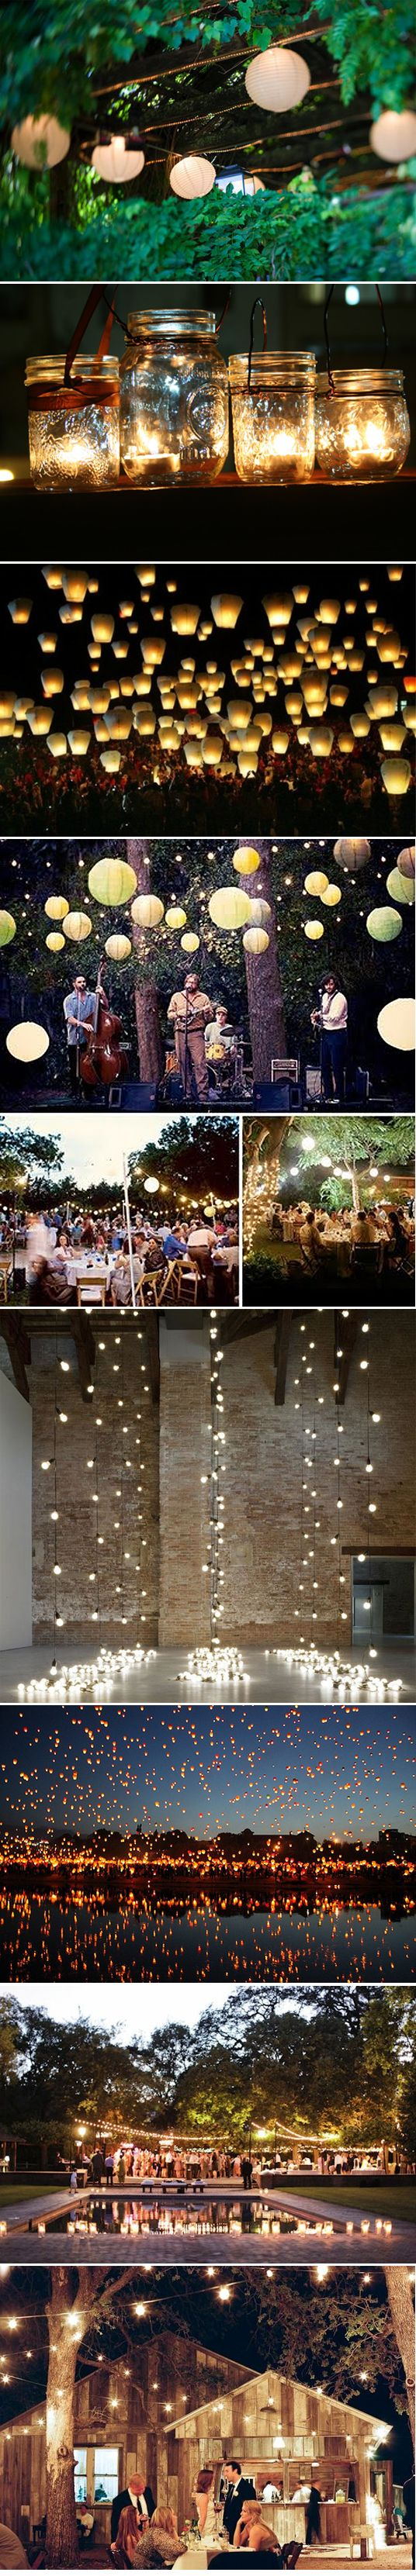 All of the lights Now Let there be Light Wedding inspiration outdoor wedding inspiration wedding idea Light  wedding decor 2 inspiration